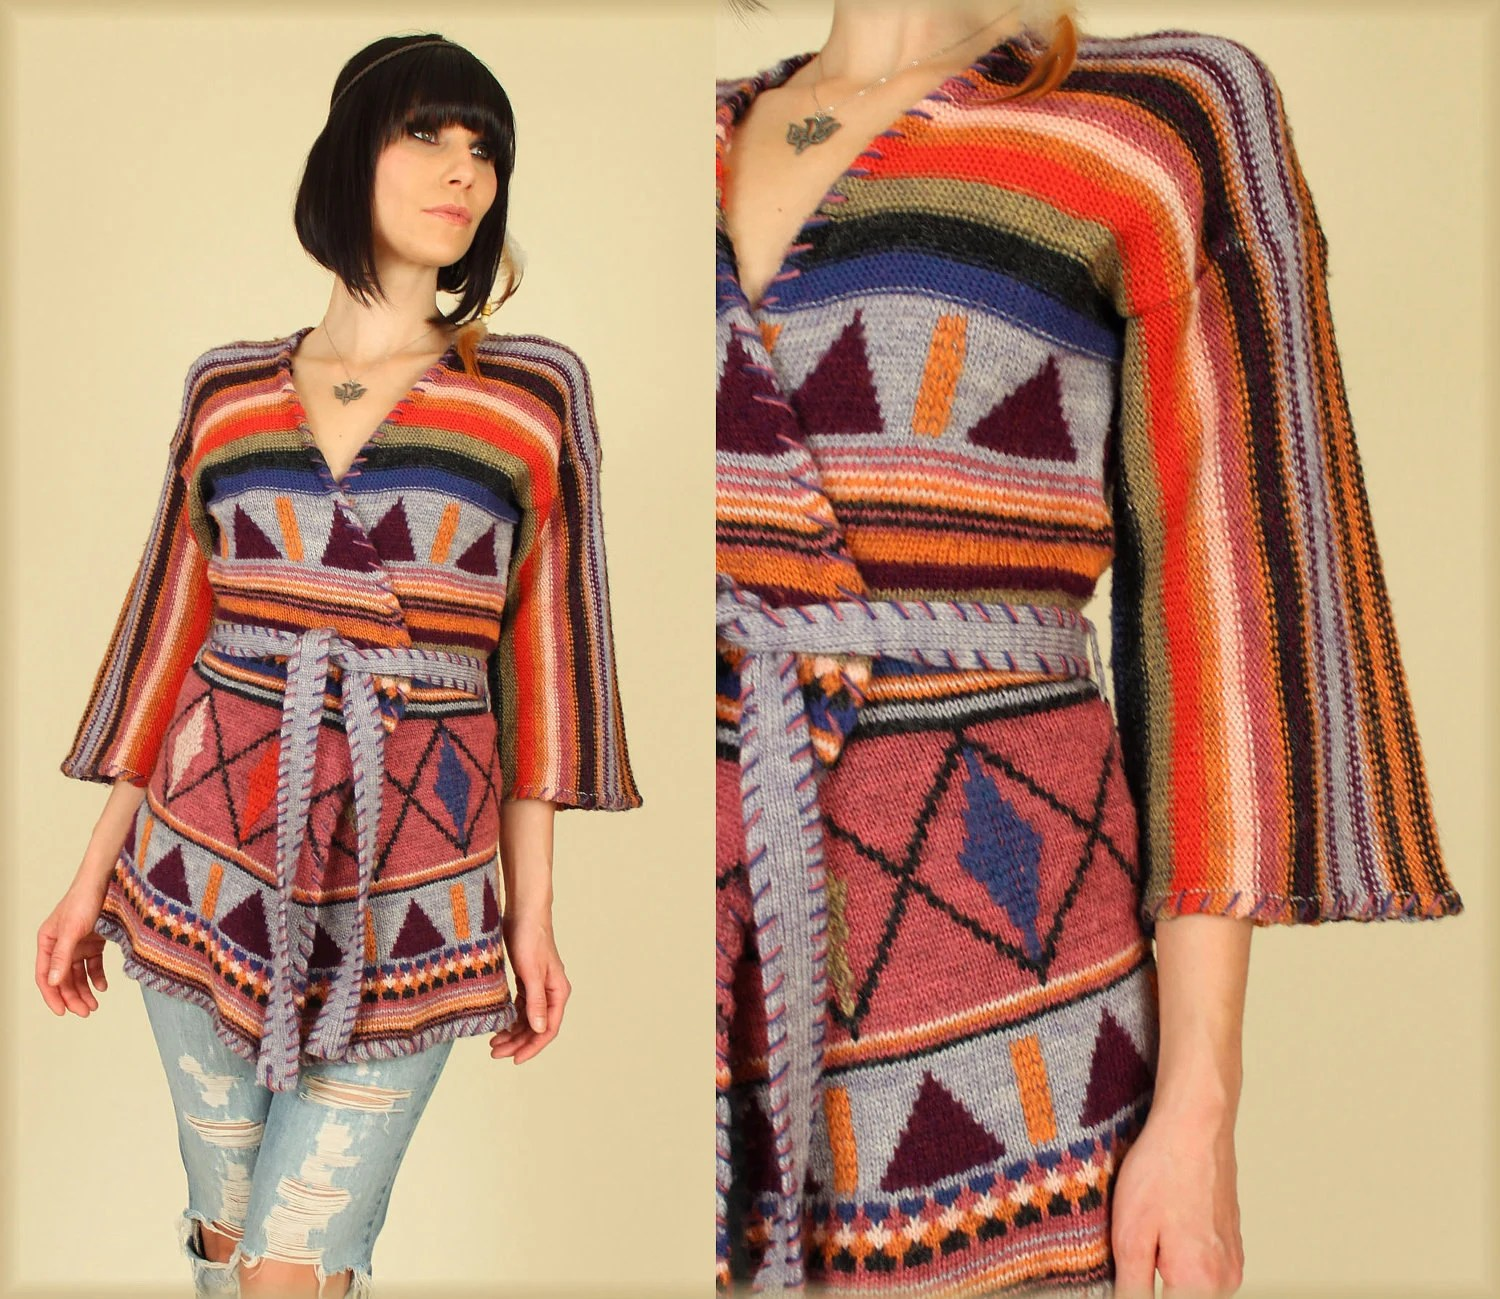 70's Organically Grown Bell Sleeve Sweater from hellhoundvintage on Etsy